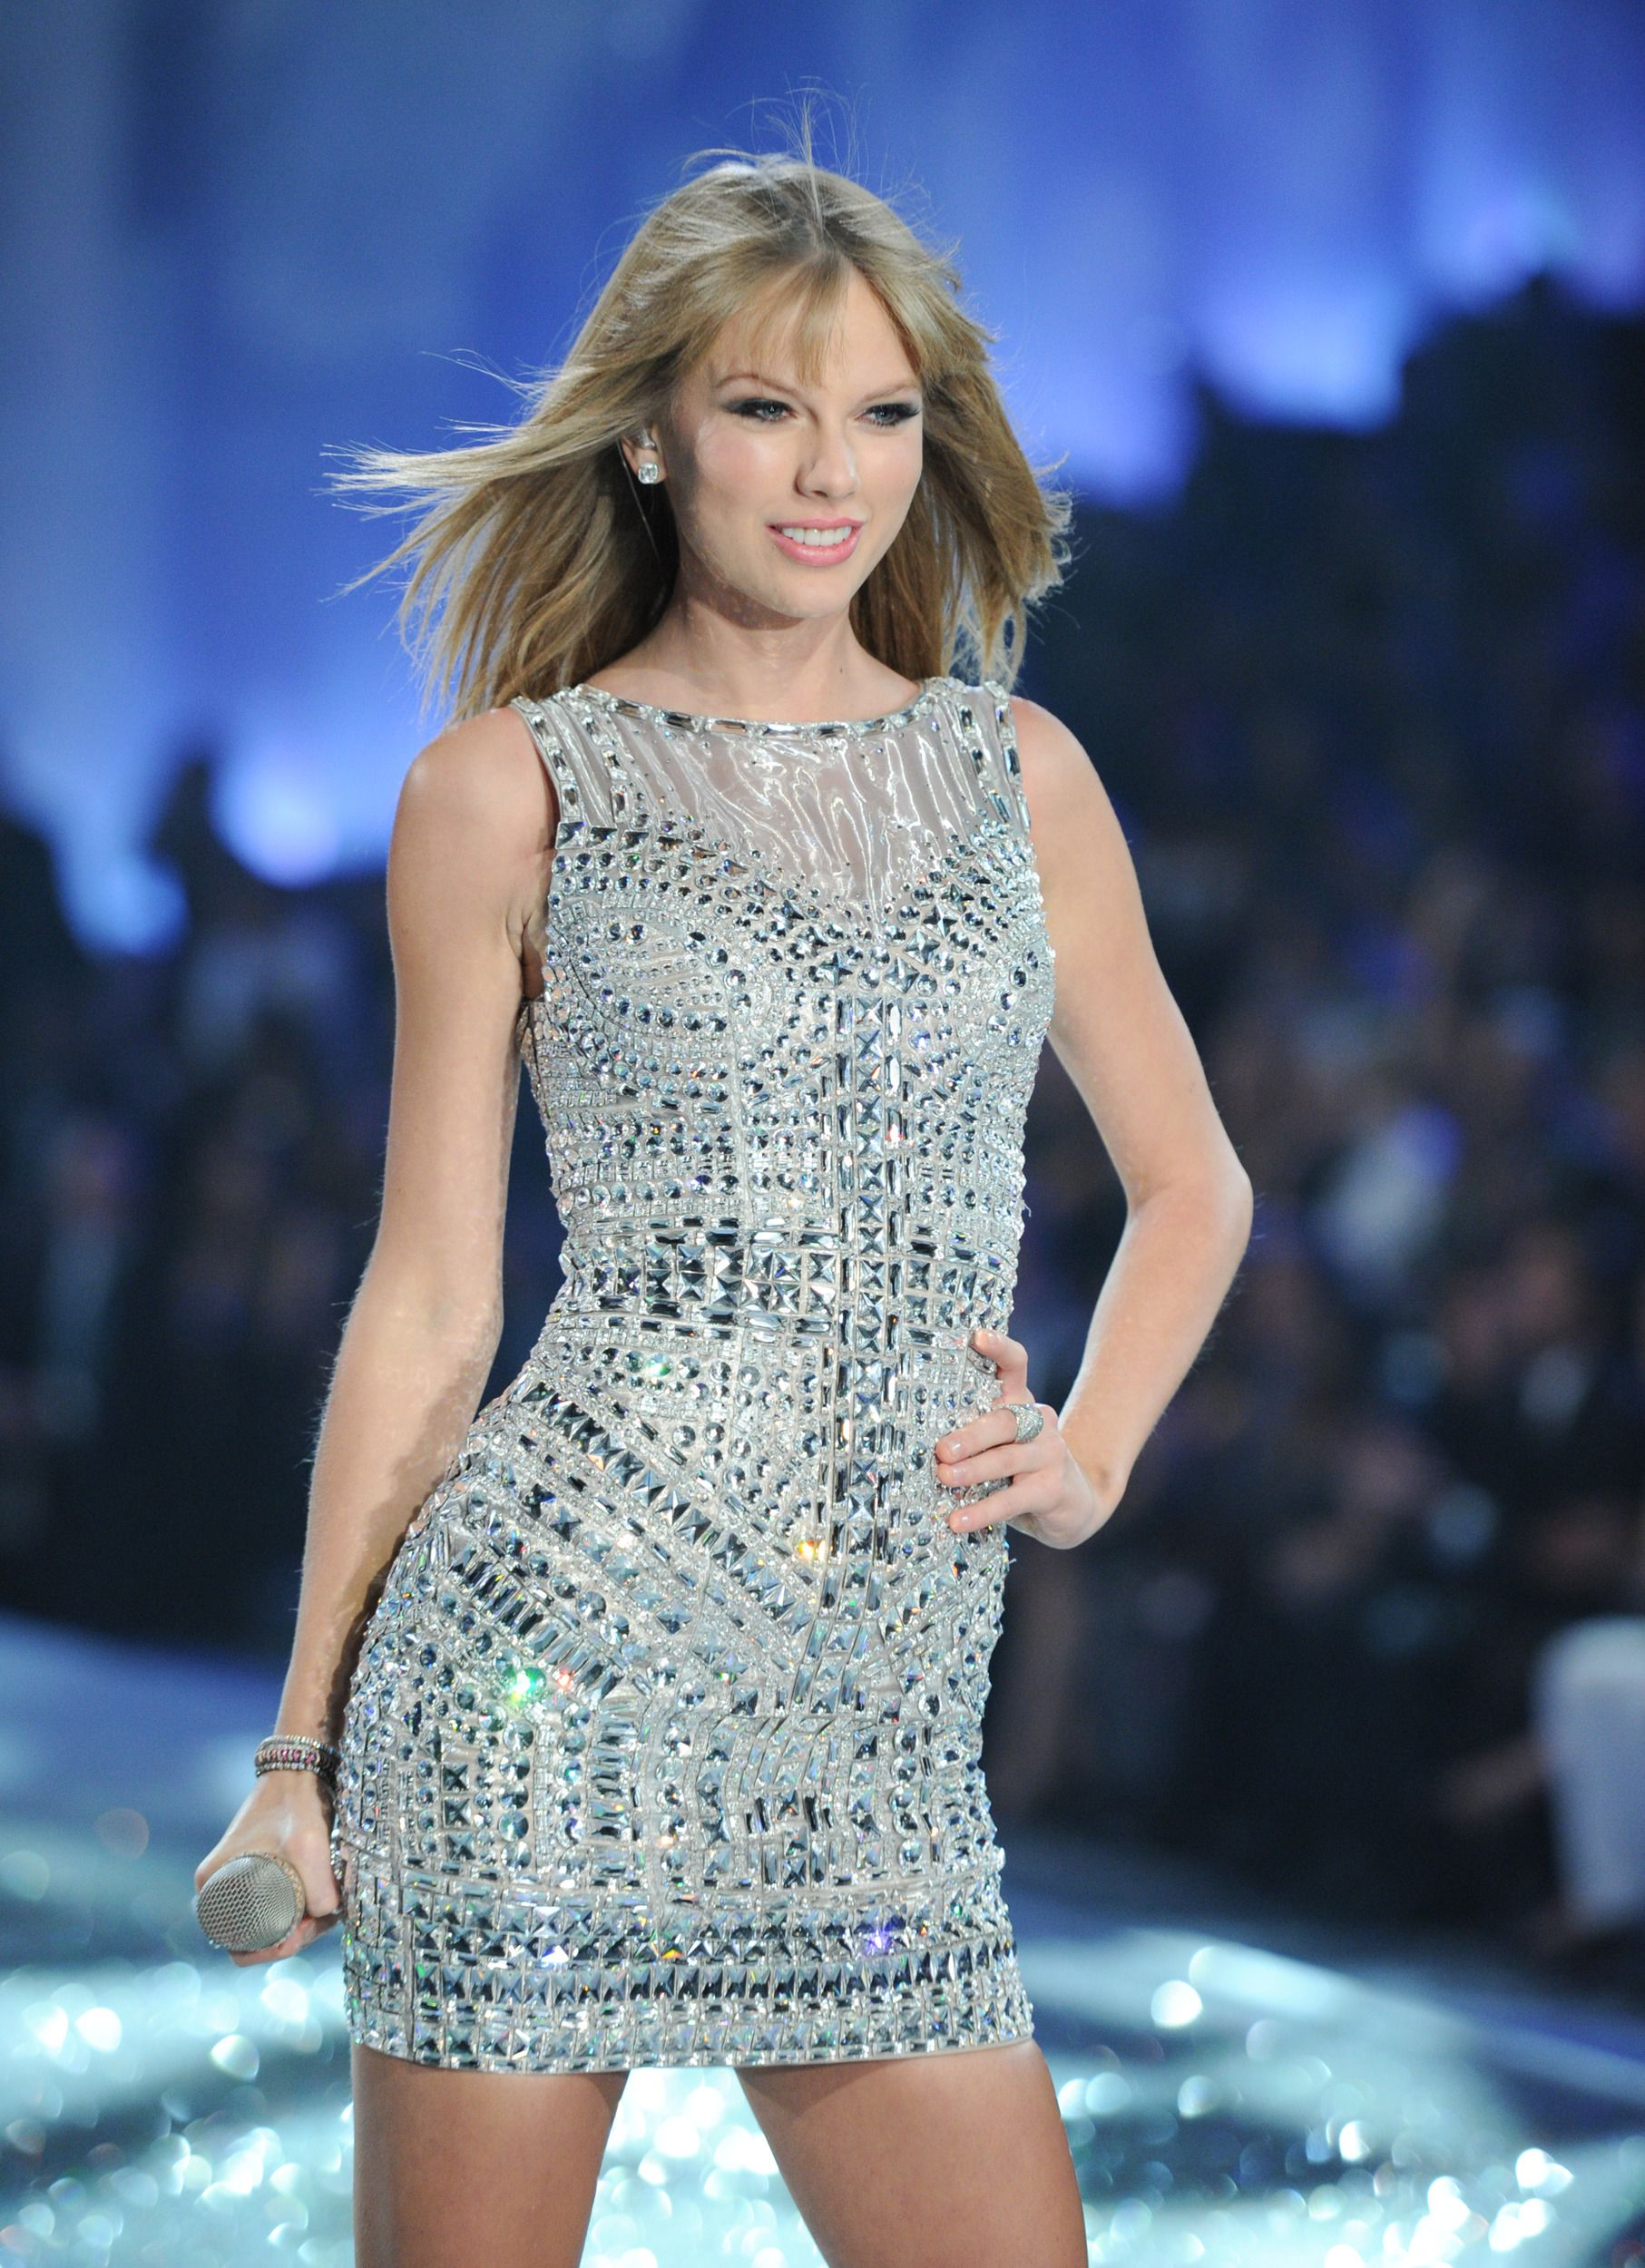 Forum on this topic: Kristen hager, taylor-swifts-top-whorish-moments-from-her1989/